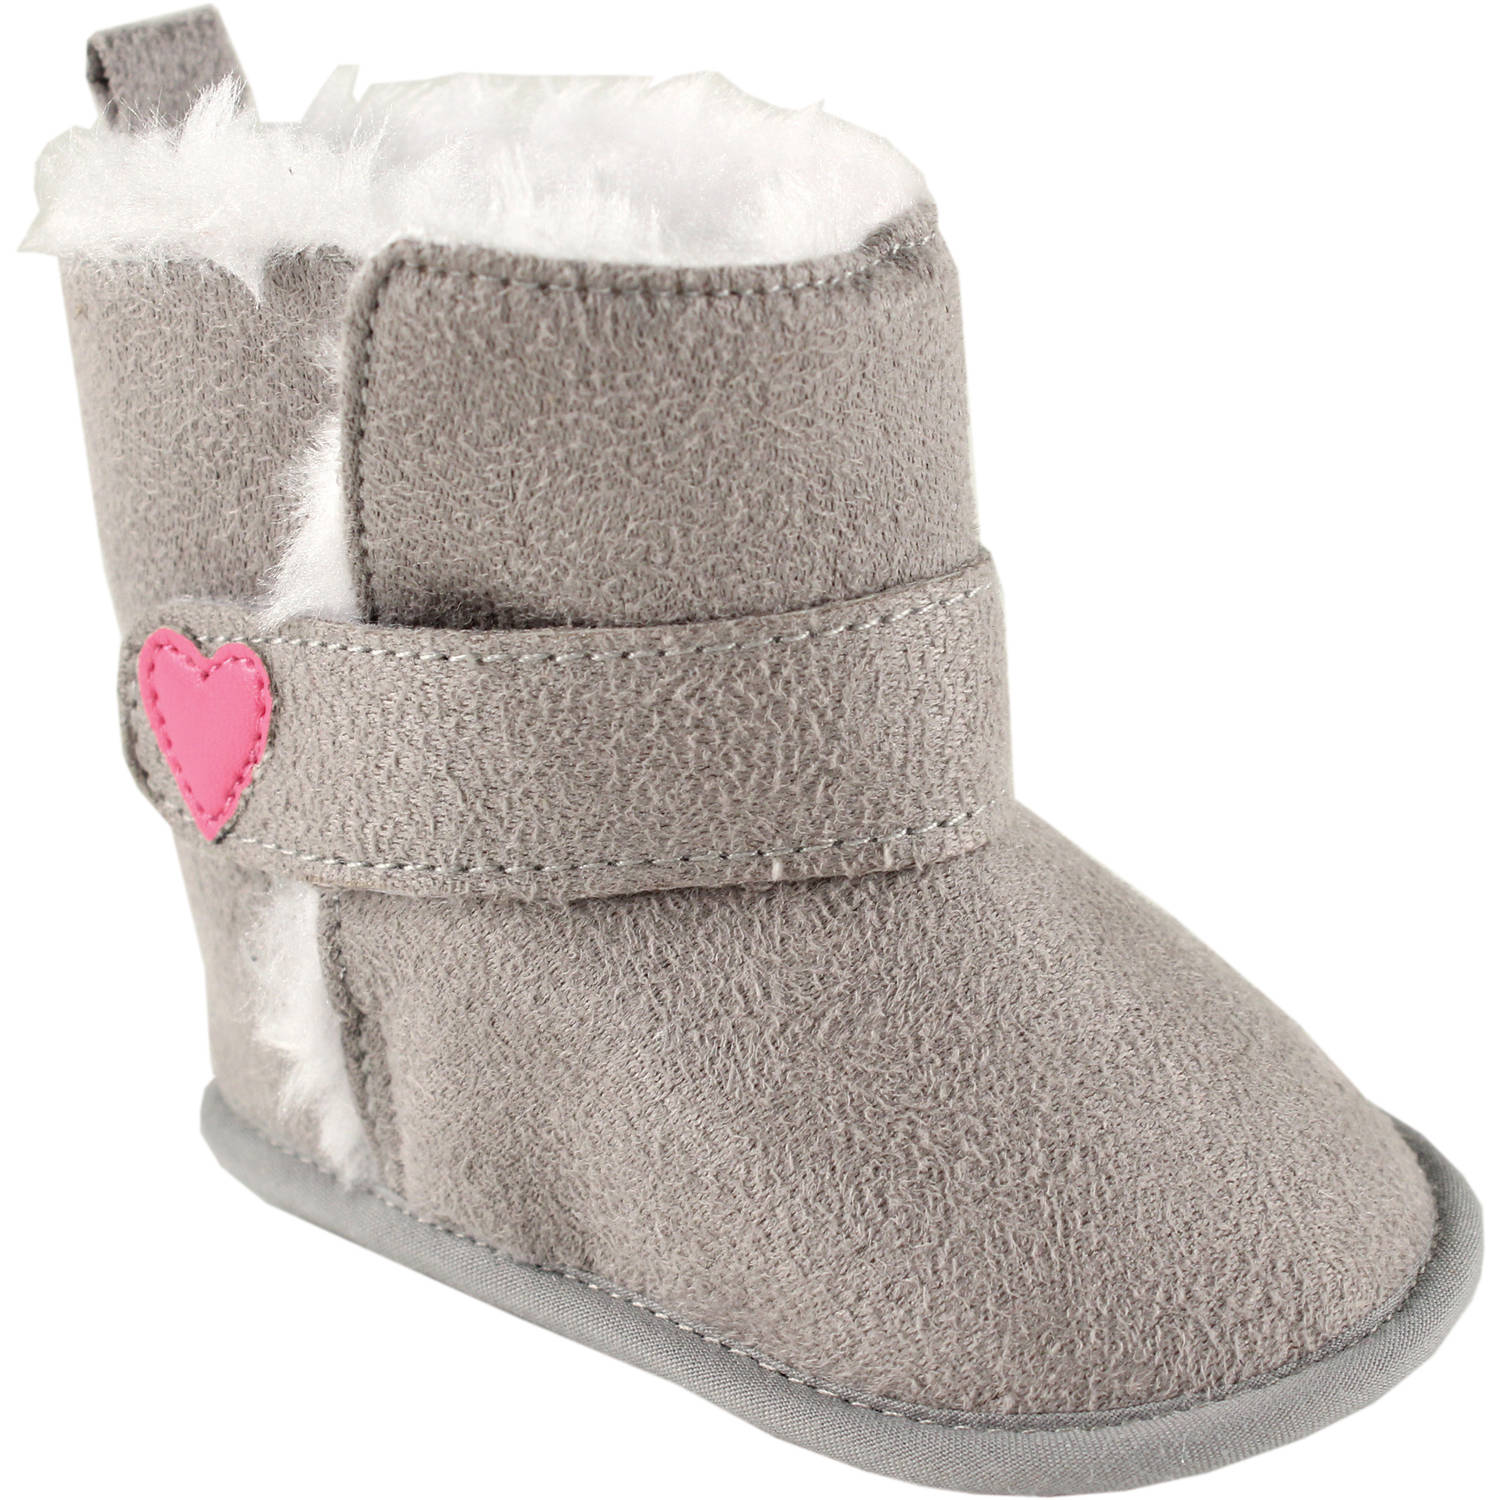 Luvable Friends Newborn Baby Girls Faux Suede Boots